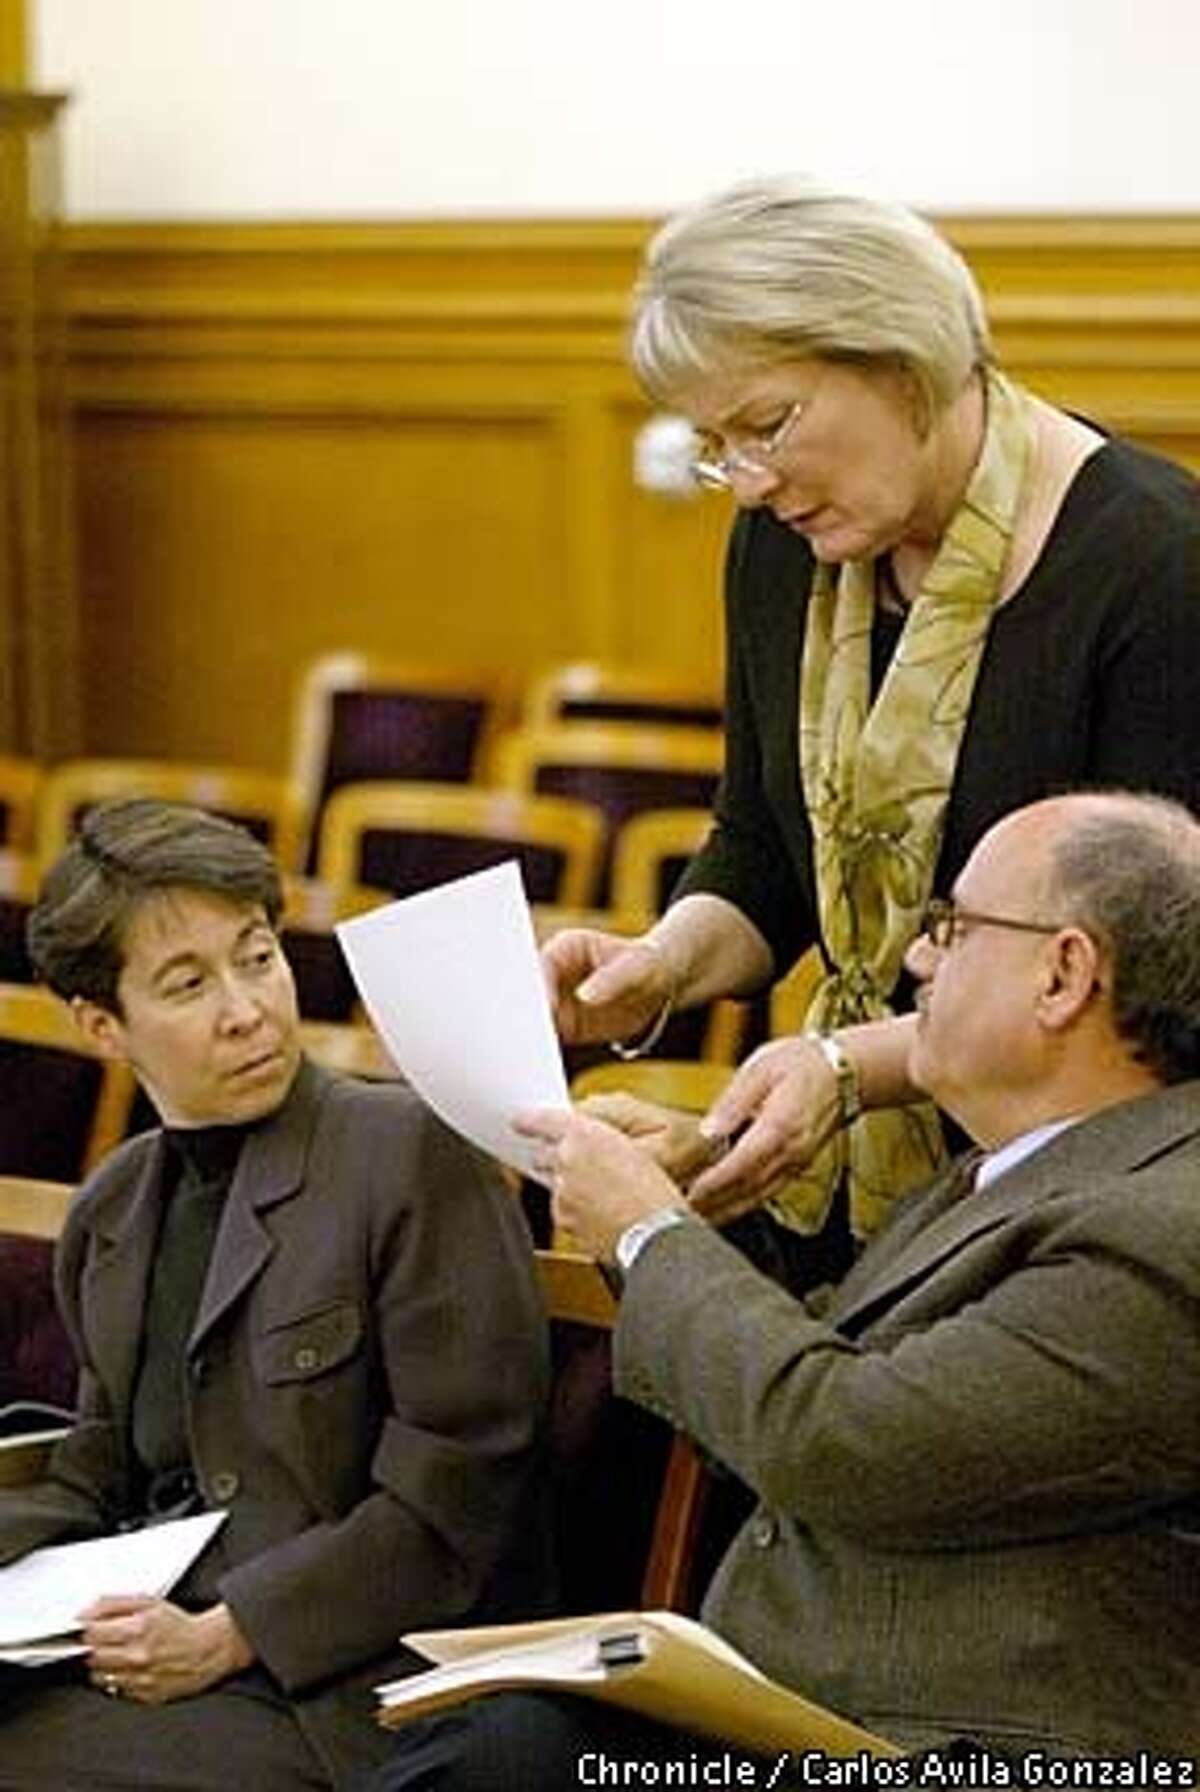 """San Francisco Human Rights Commissioner, Theresa Sparks, standing, speaks with Larry Brinkin, right, and Cynthia Goldstein of the commission during a earing on Thursday, March 27, 2003. Sparks was honored as """"Woman of the Year,"""" by the California State Assembly. (CARLOS AVILA GONZALEZ/SAN FRANCISCO CHRONICLE)"""